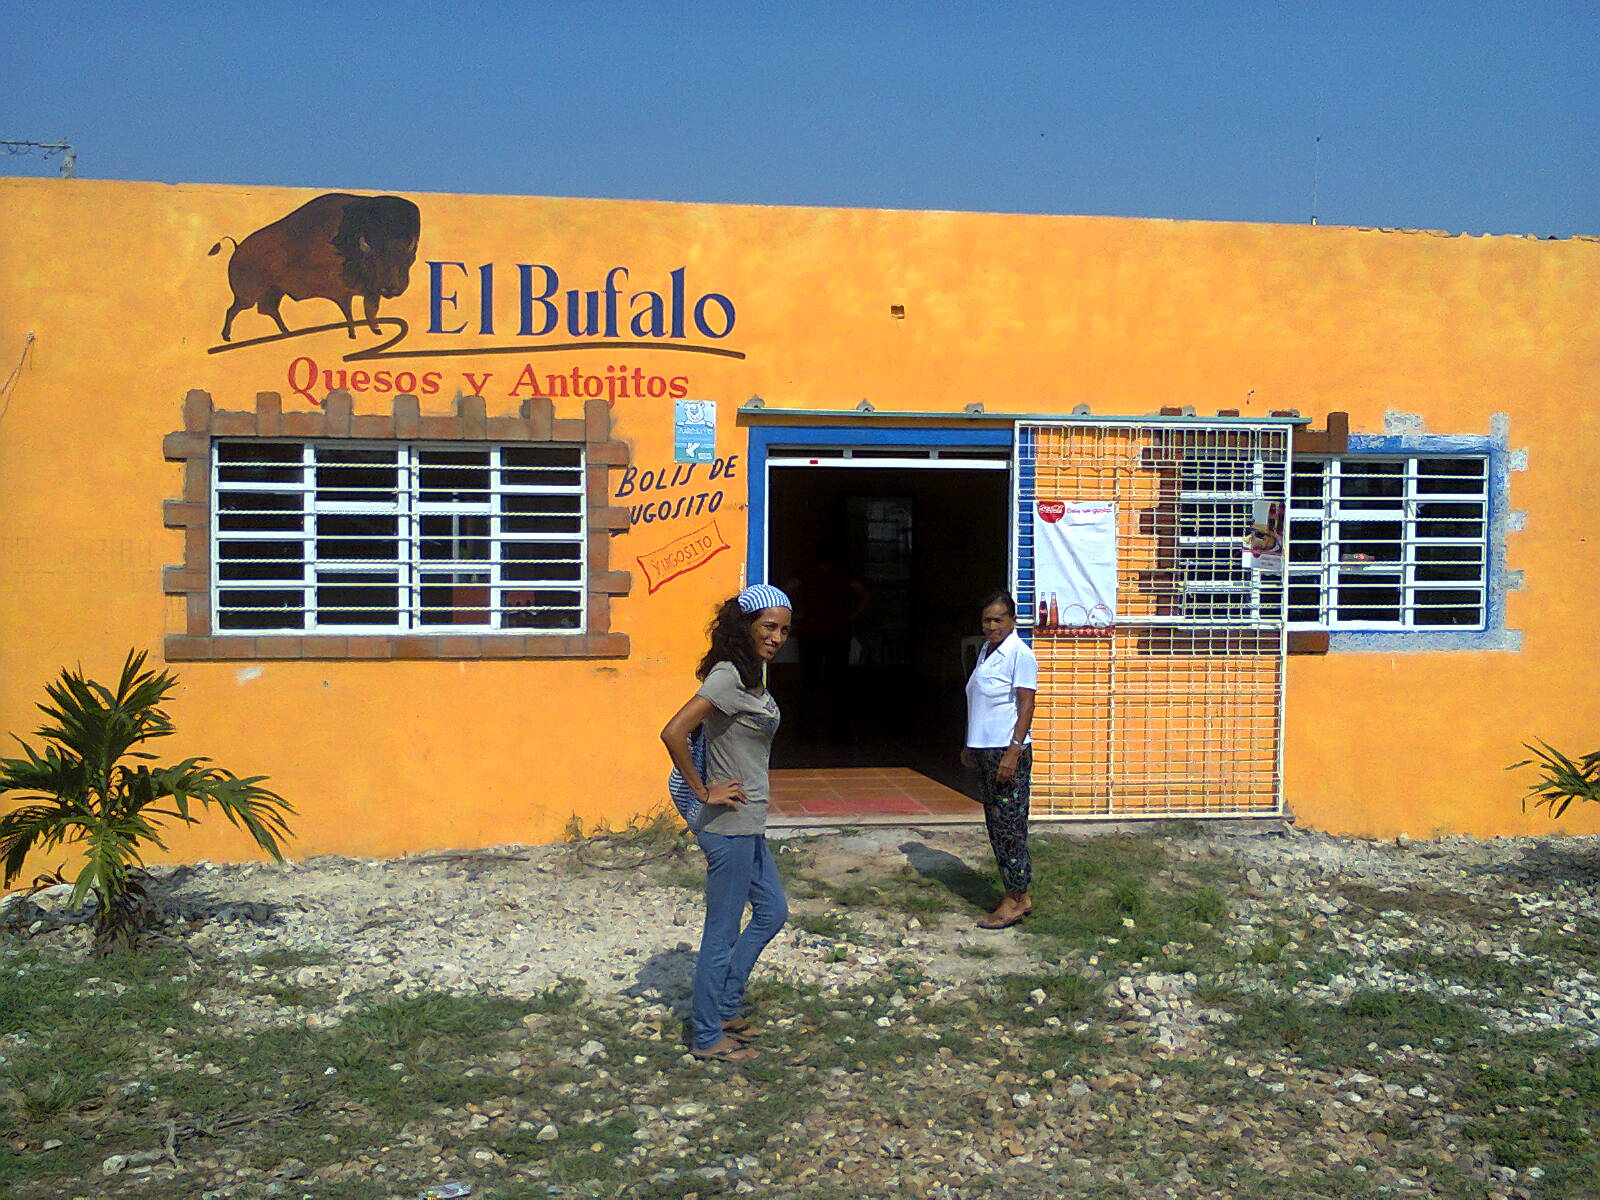 El Bufalo Ranch and Restaurant